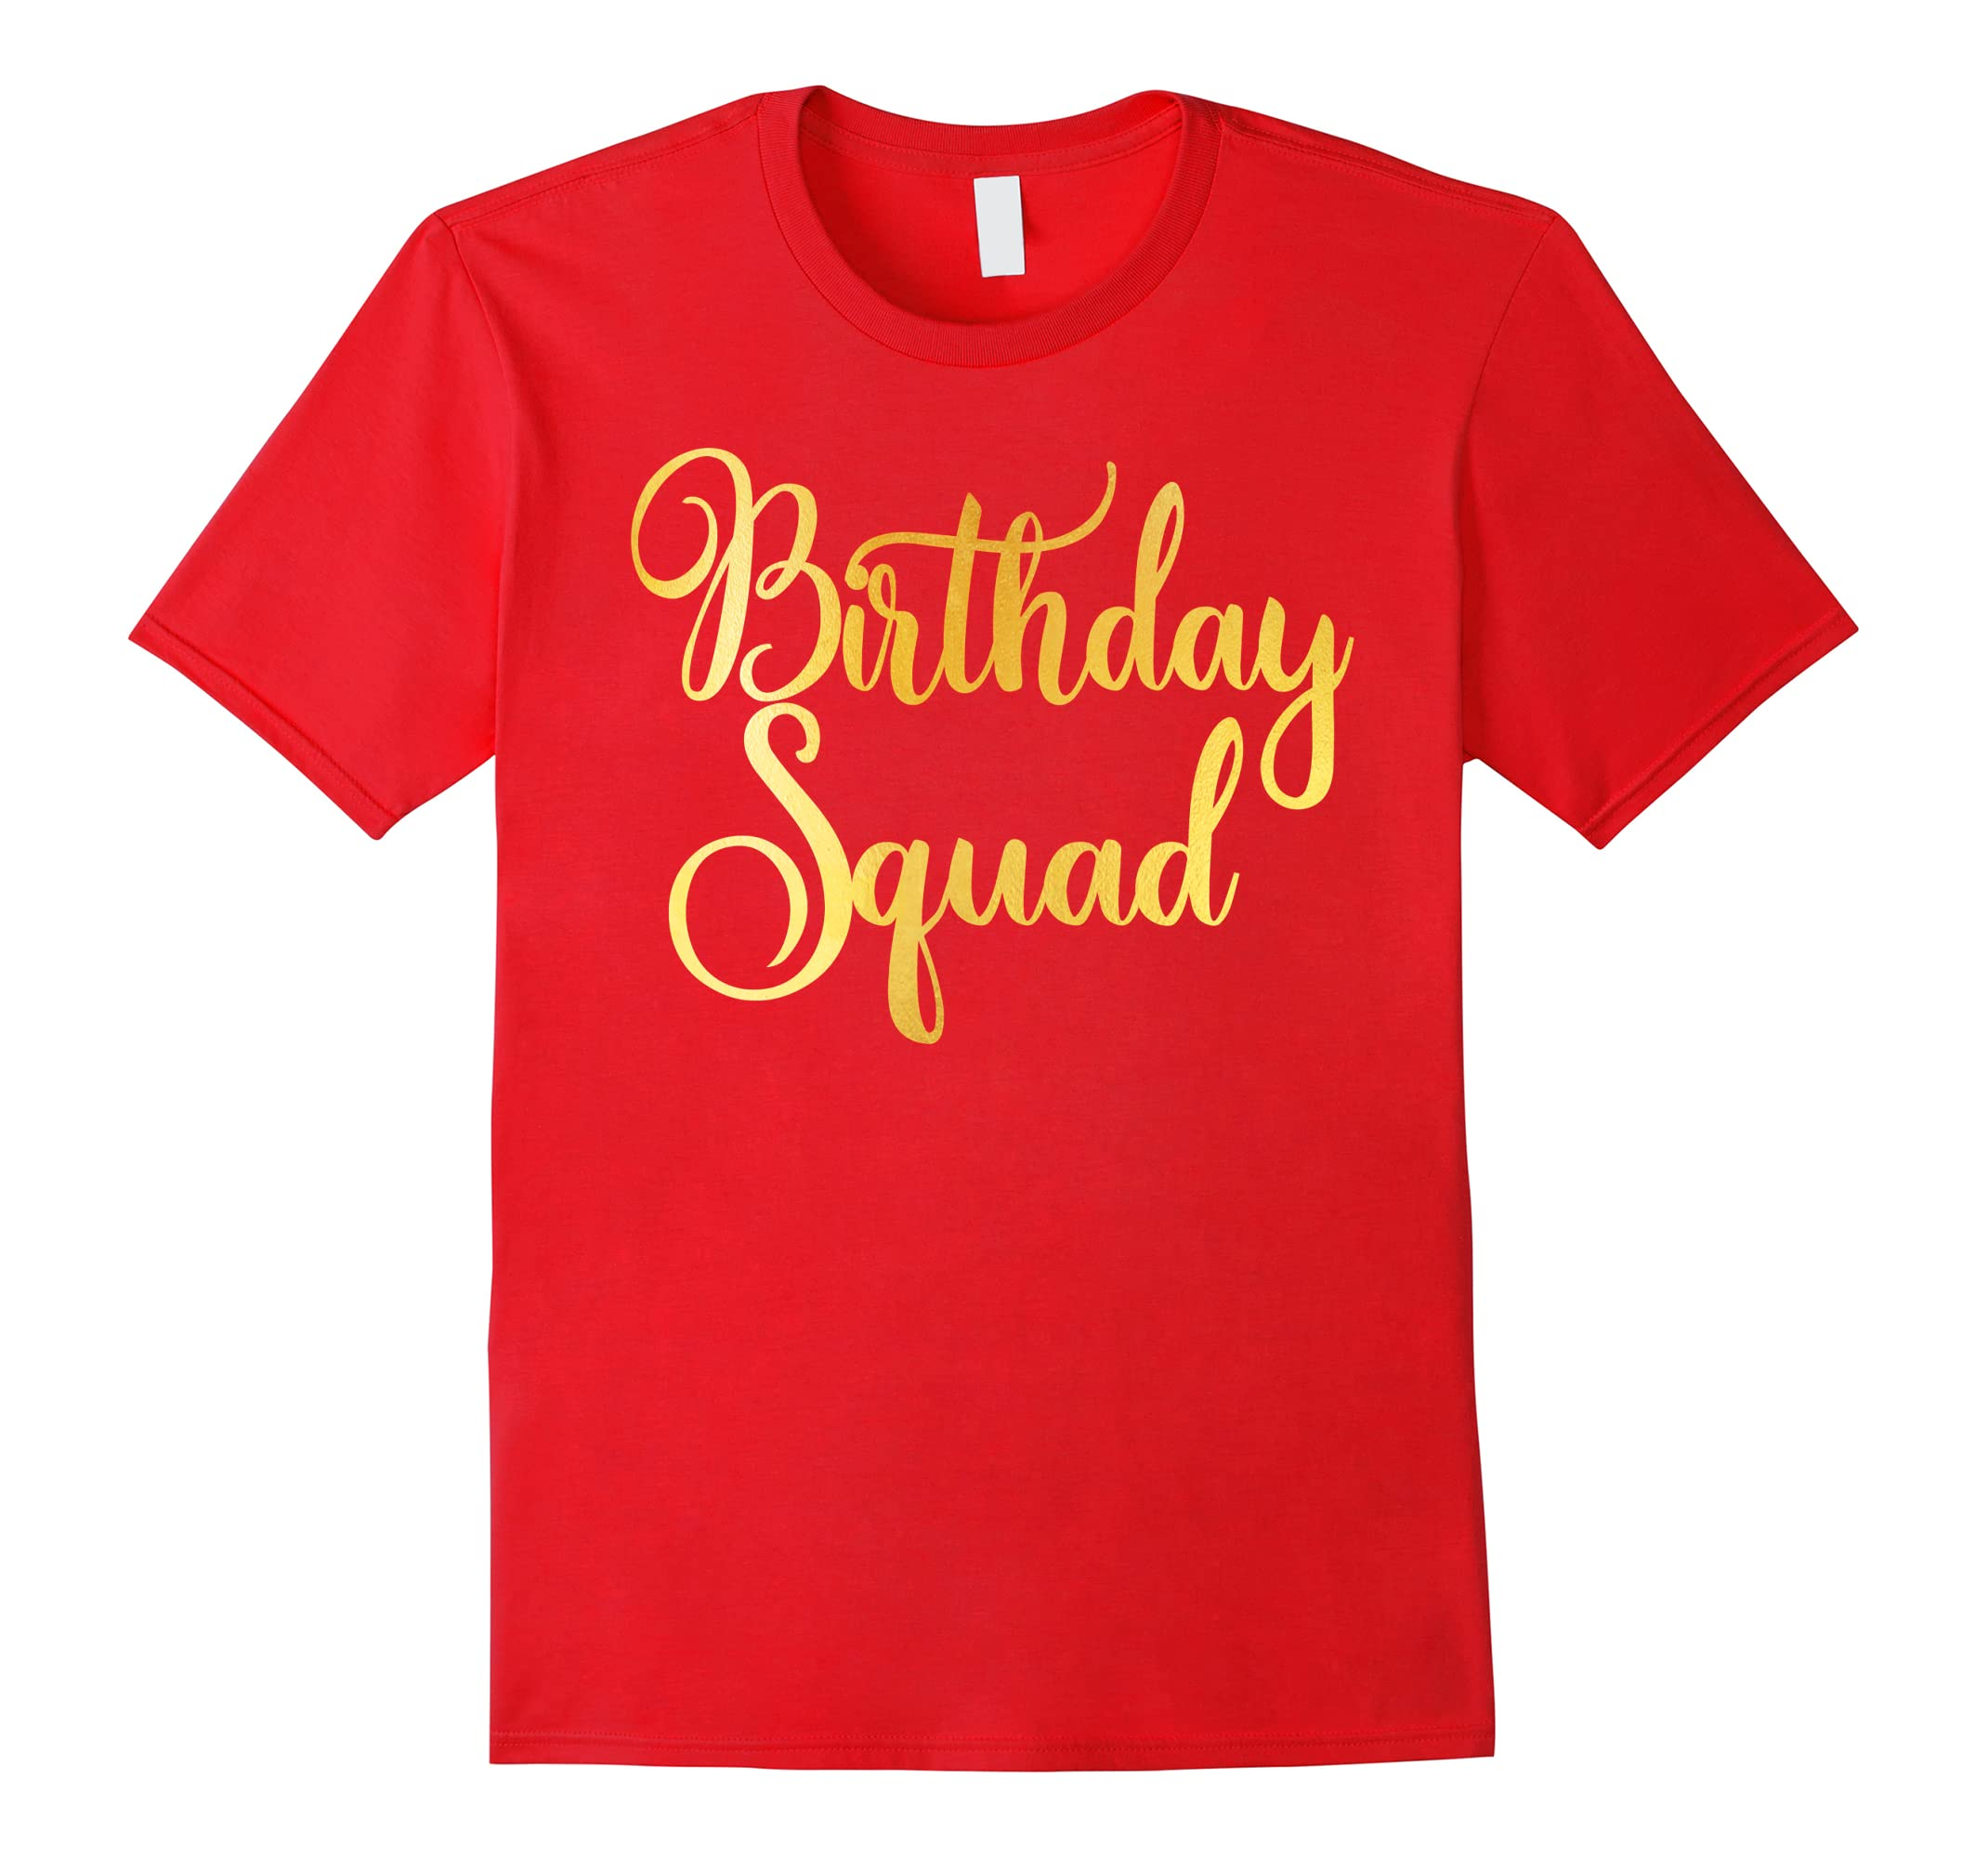 Birthday Squad T Shirt Gold Design Family Party Ah My One Gift Ahmyshirt